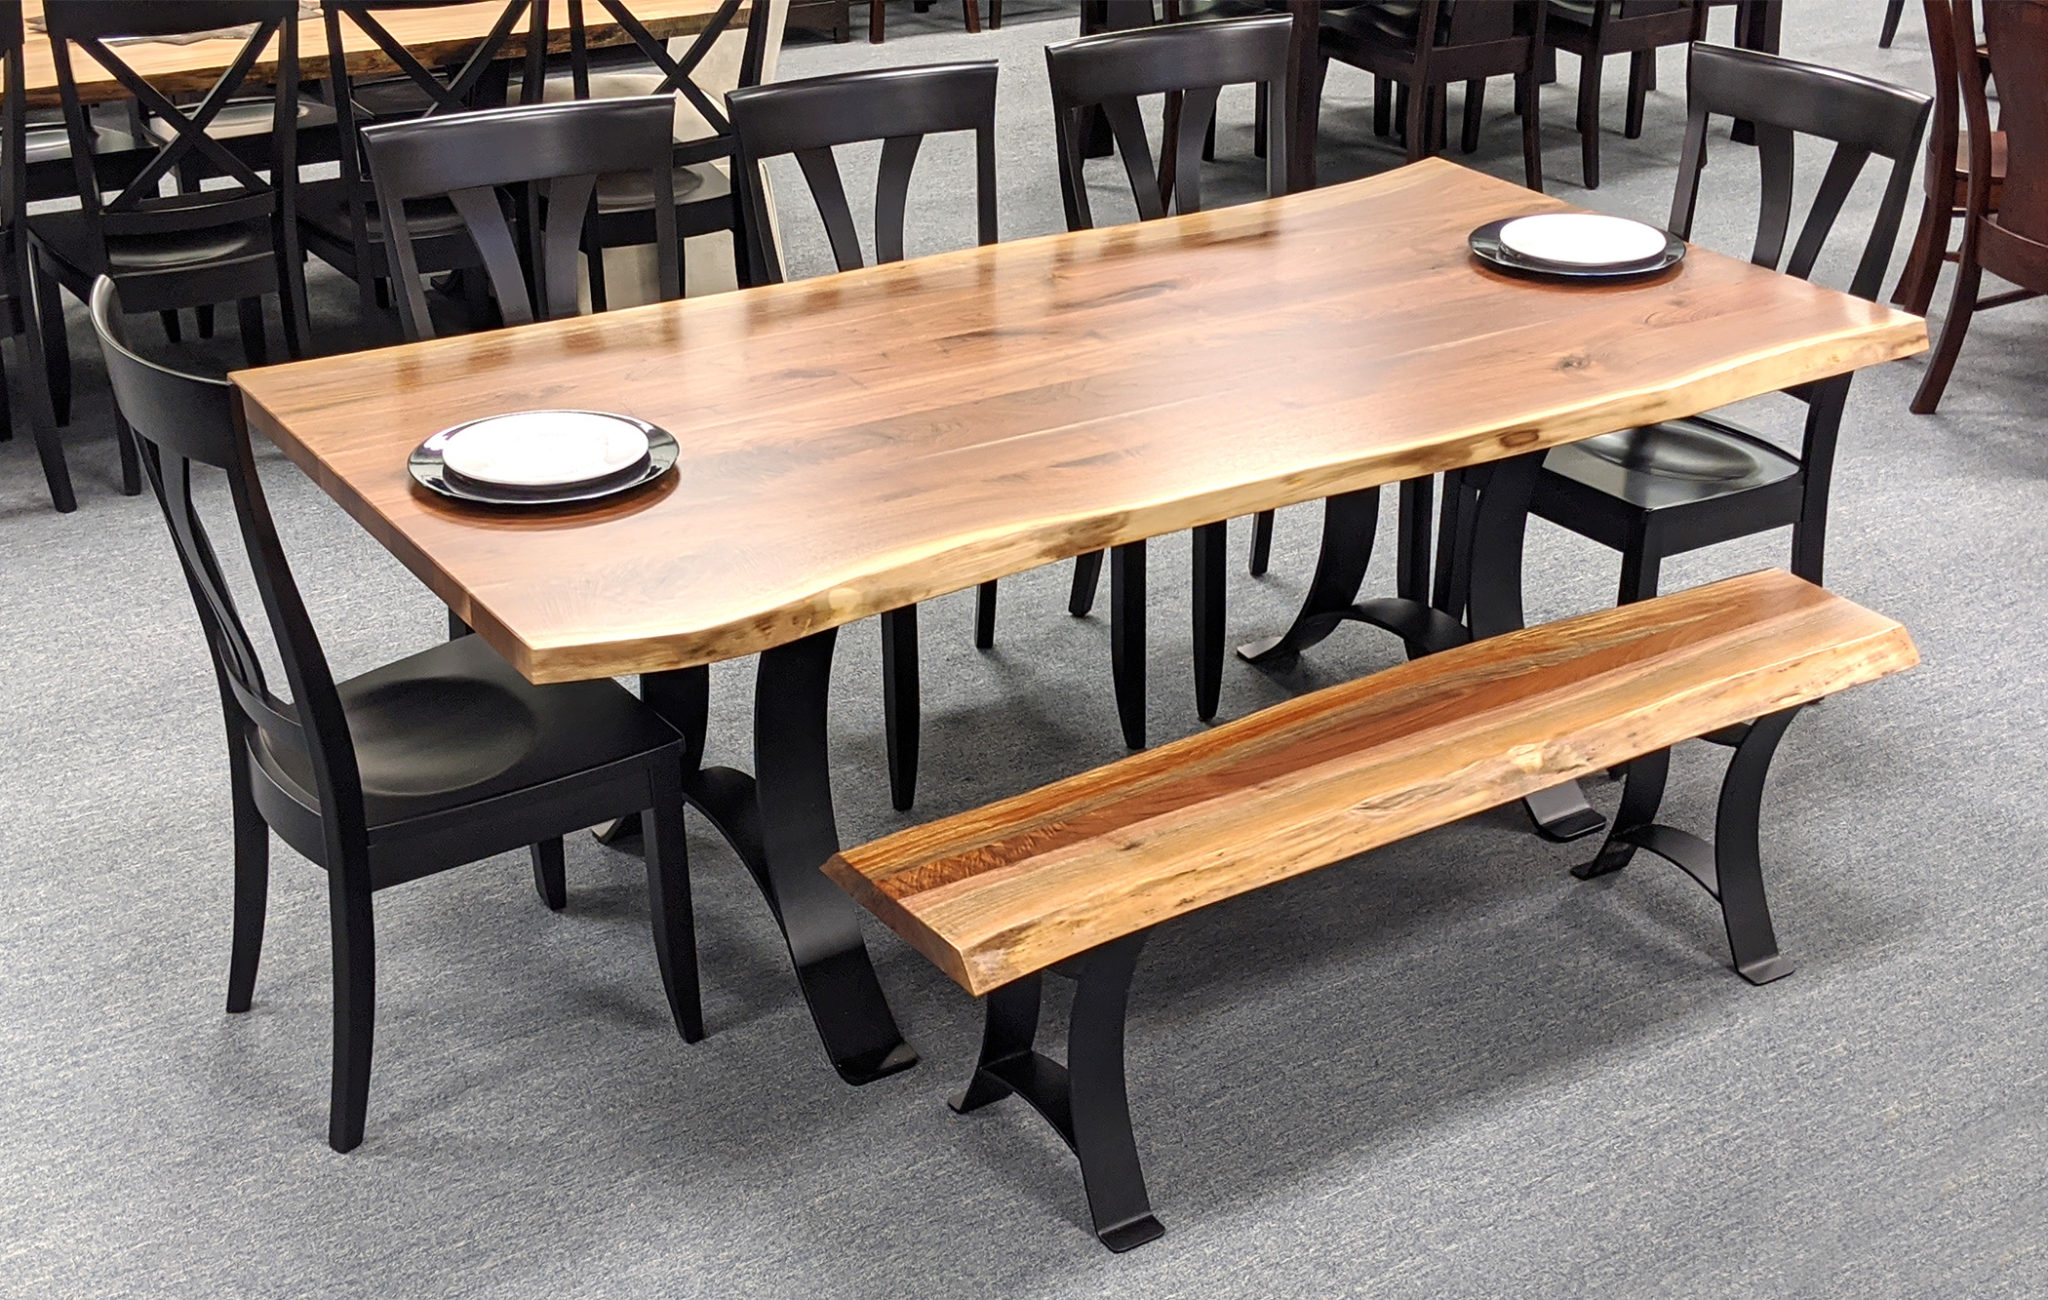 Astoria Live Edge Table With Bench 2100 X 1333